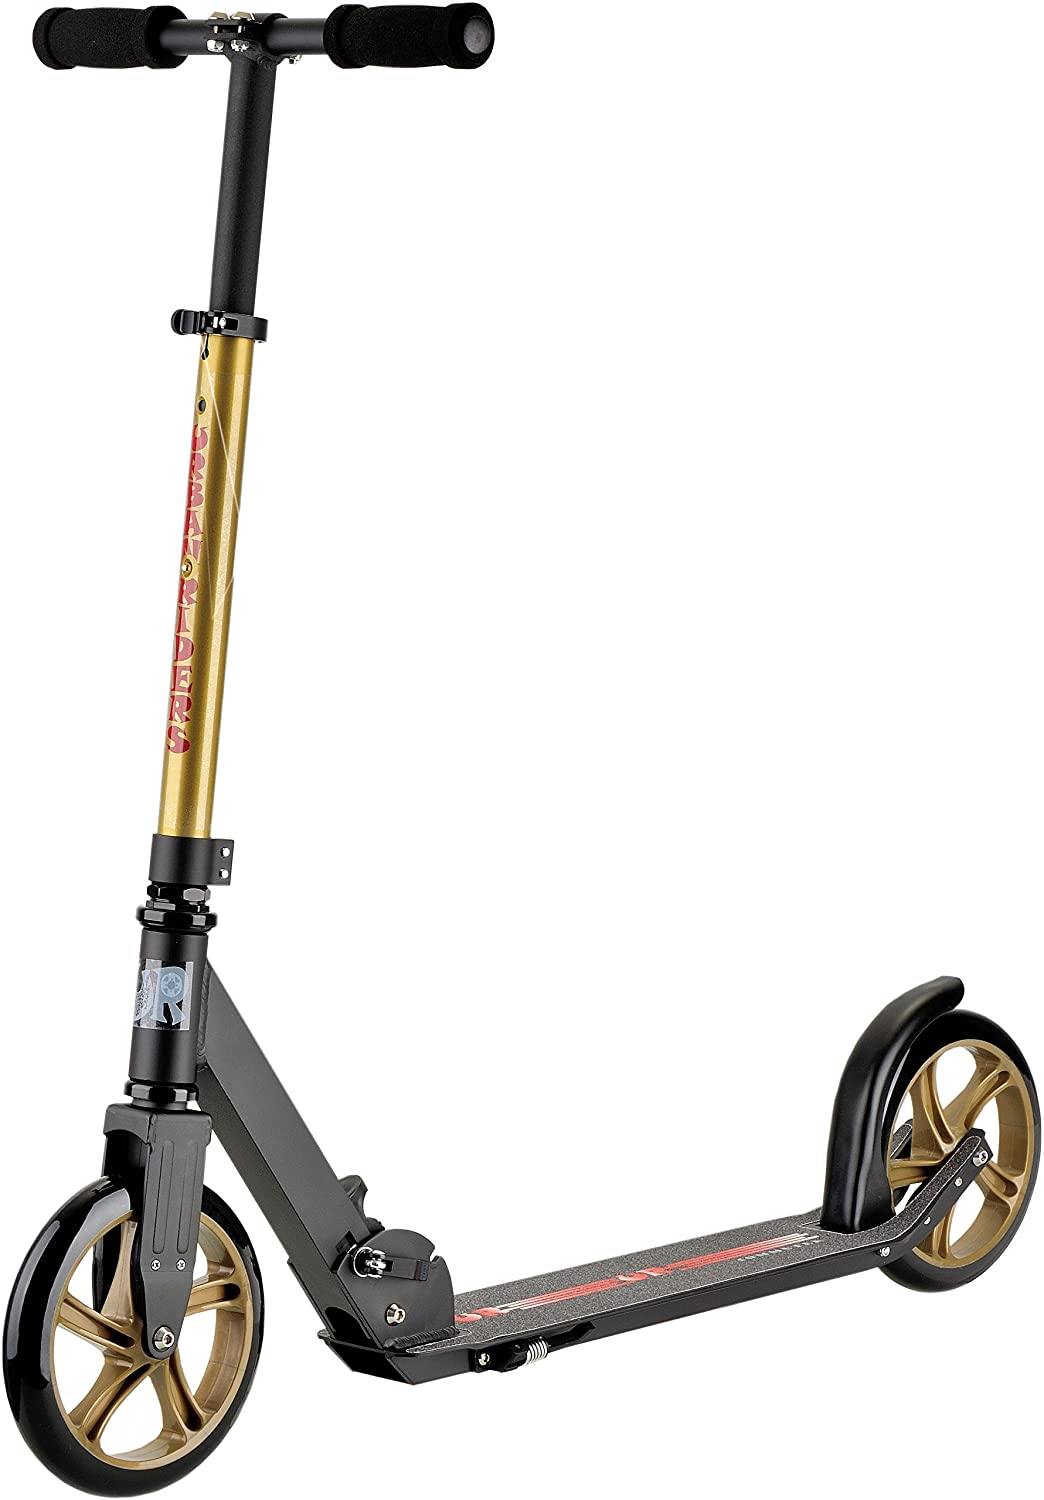 Commuter Special (Gold) Adult Kick Scooter | Telescope Handlebar | Adult Size Scooter | URBAN RIDERS USA